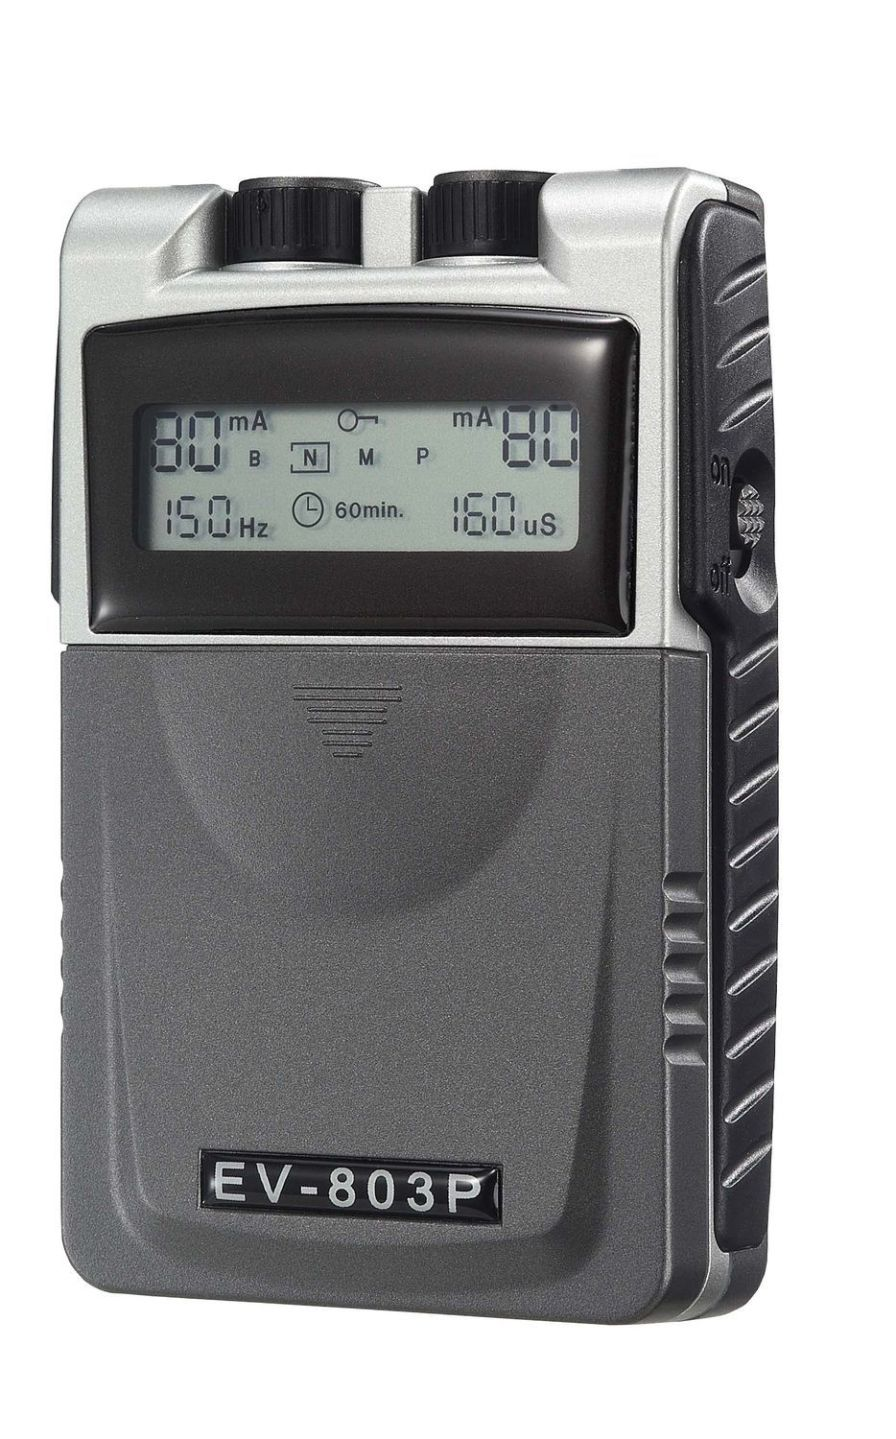 Electro-stimulator (physiotherapy) / hand-held / TENS / 2-channel 1-150 Hz | EV-803P Current Solutions